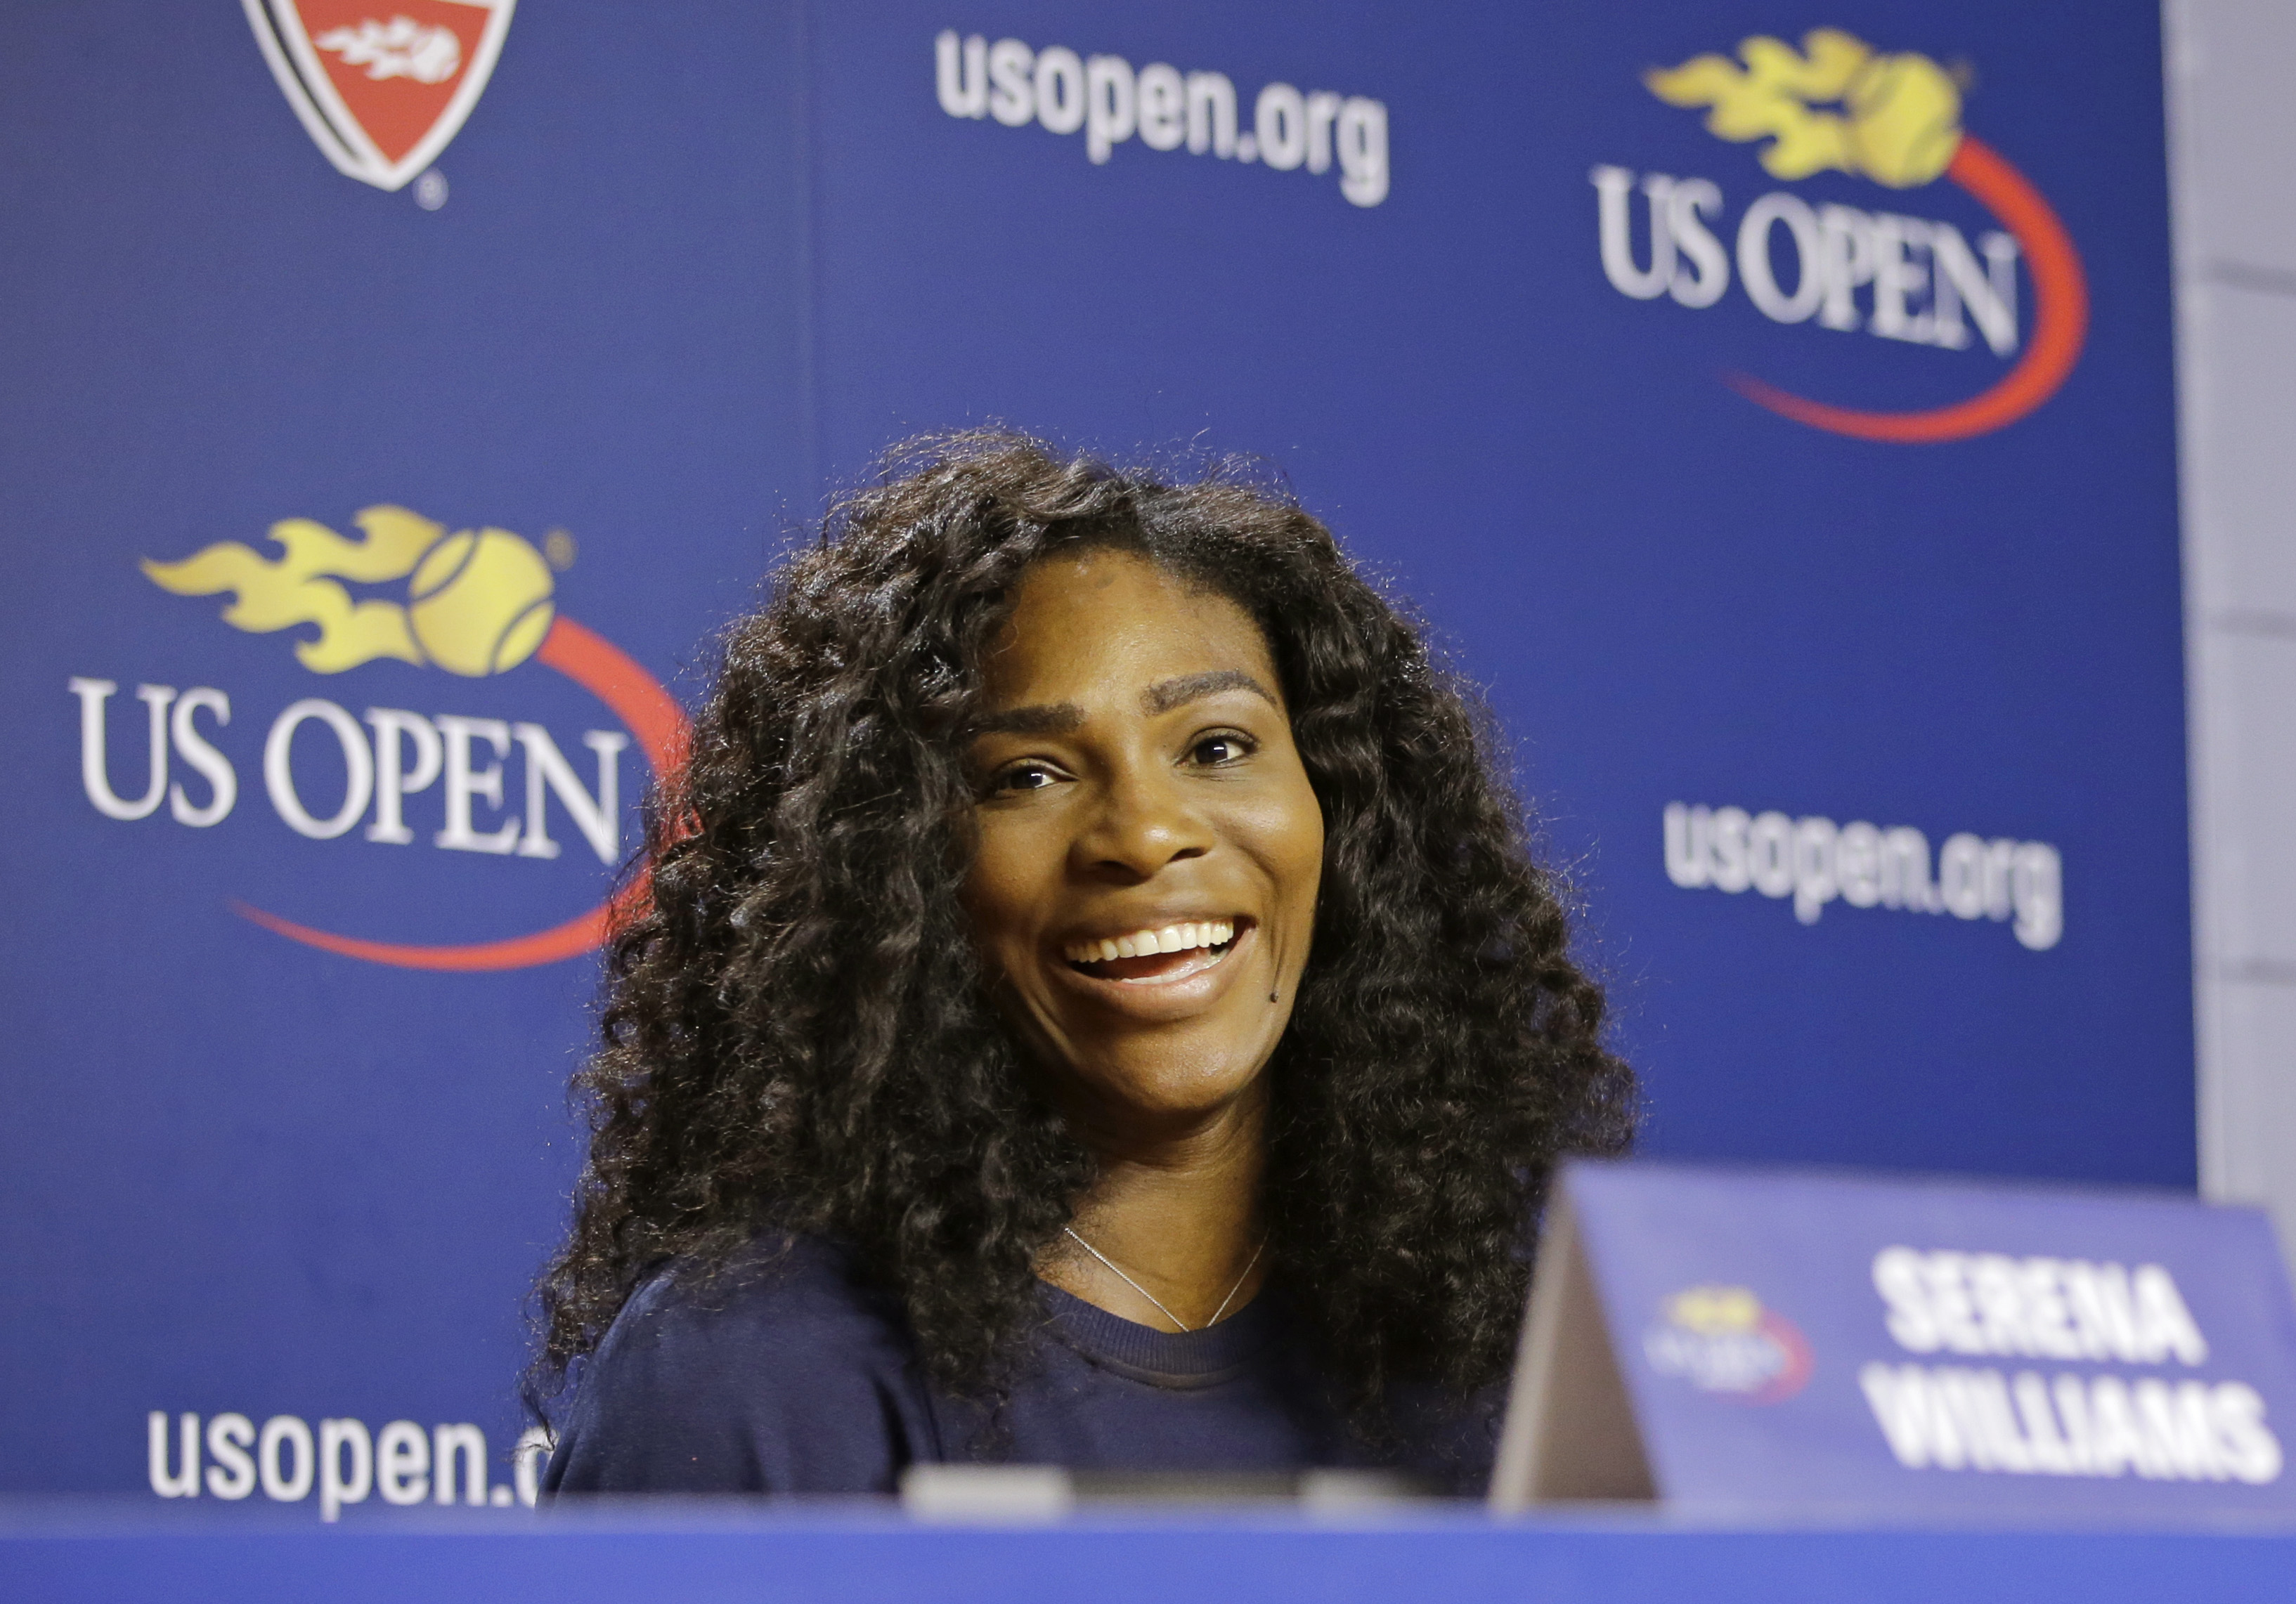 U.S. Open Tennis defending women's champion Serena Williams speaks during a press conference at the USTA Billie Jean King National Tennis Center in New York, Thursday, Aug. 27, 2015. Williams is in position to win the Grand Slam this year if she wins the